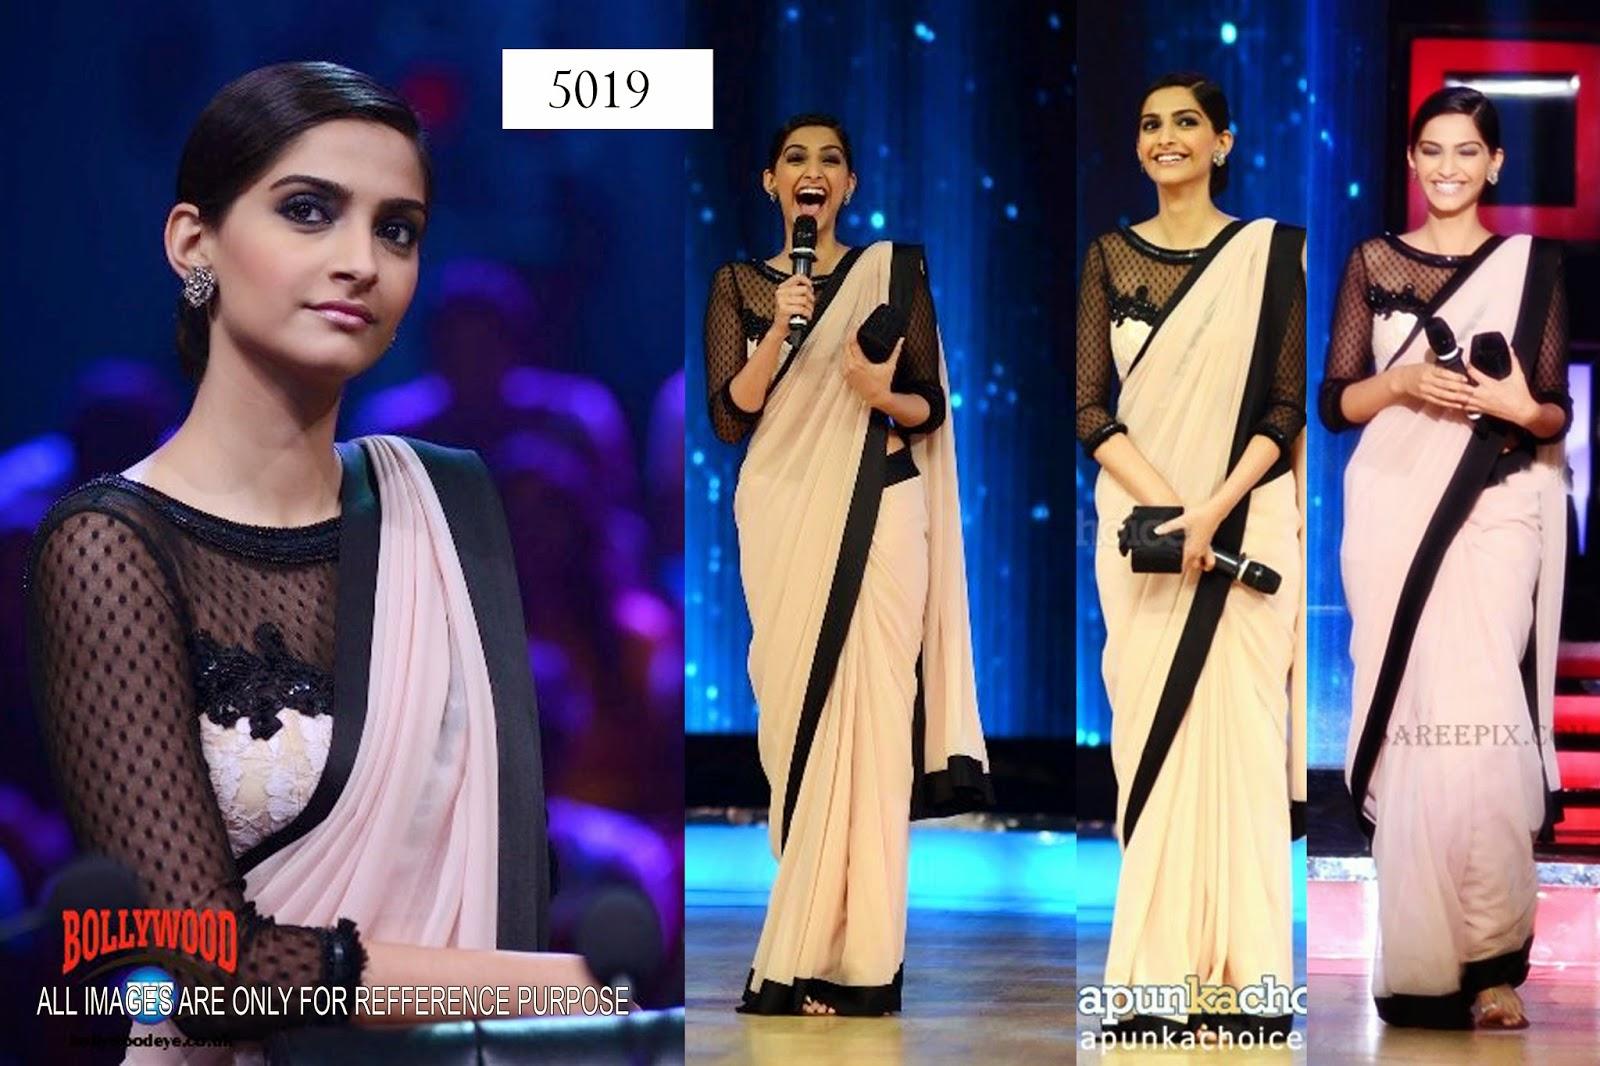 SONAM KAPOOR IN SAREE STILLS